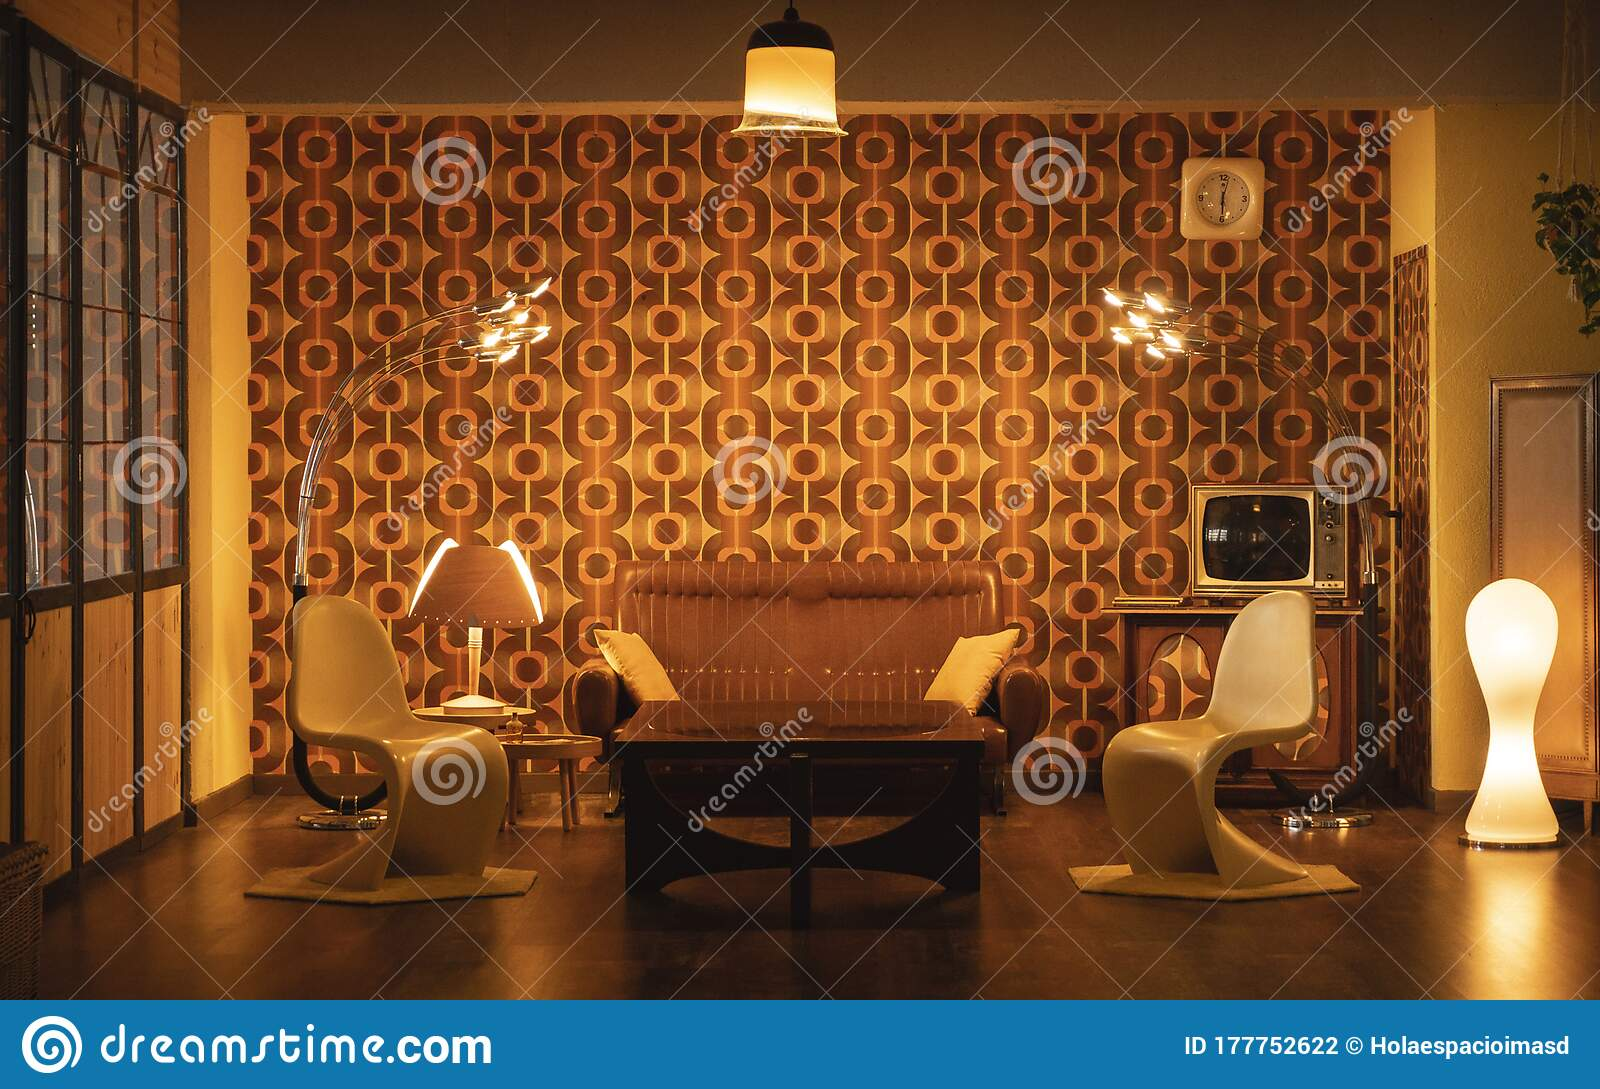 Interior Home Decoration Beautiful 60s Living Room With Design Furniture Stock Photo Image Of Light Indoor 177752622